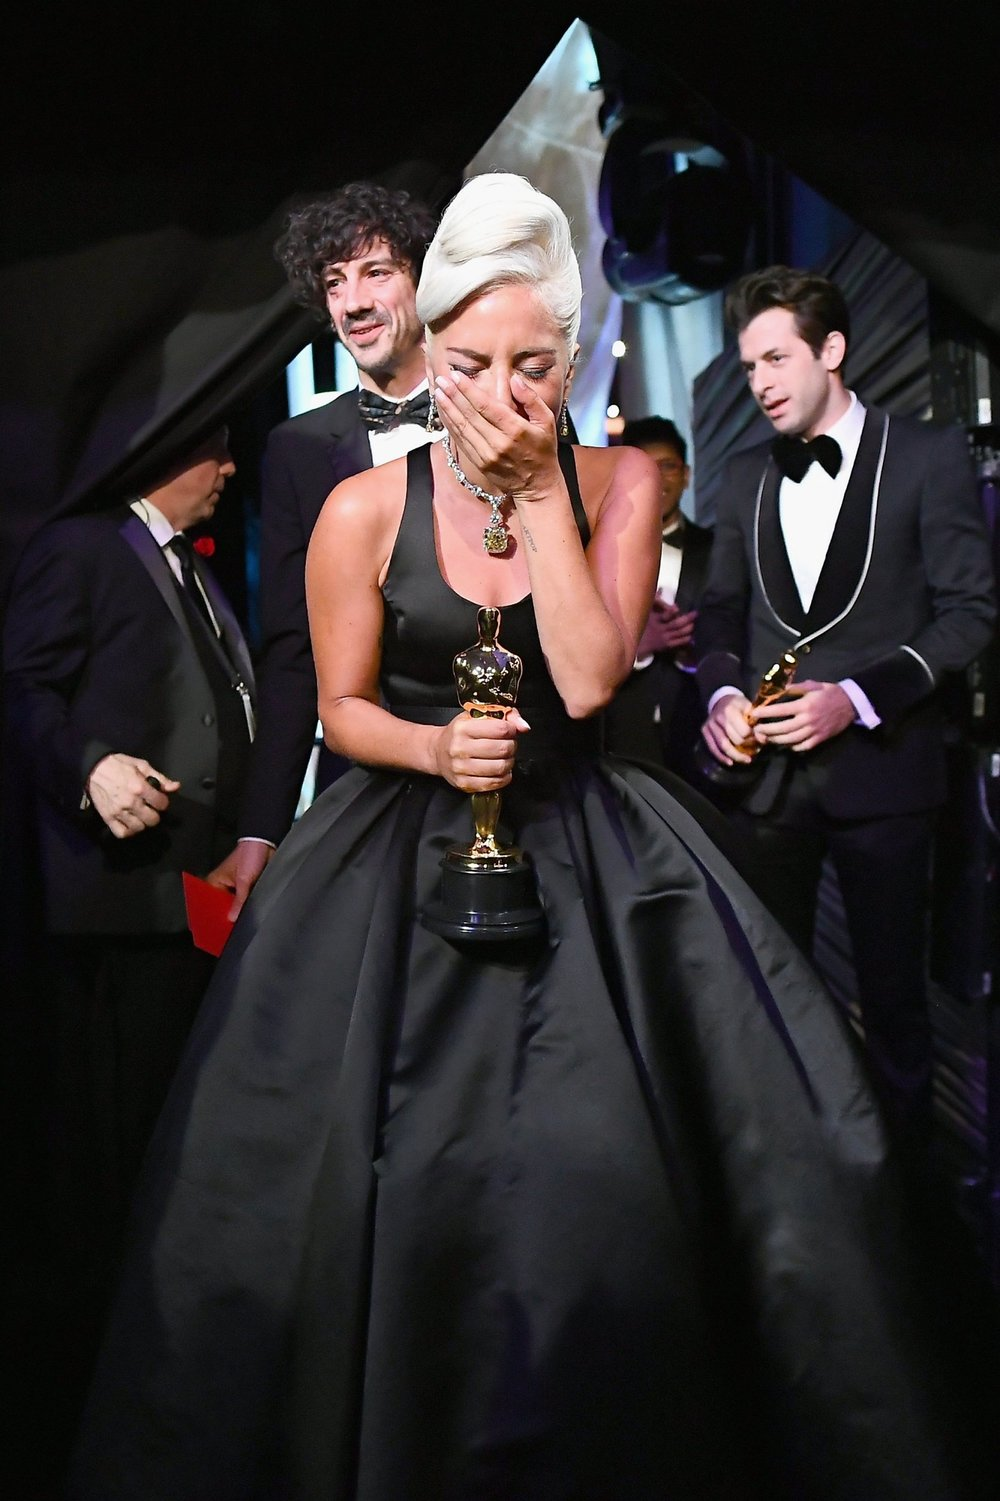 And the Oscar for Best Original Song goes to - Music and Lyric by Lady Gaga, Mark Ronson, Anthony Rossomando and Andrew Wyatt